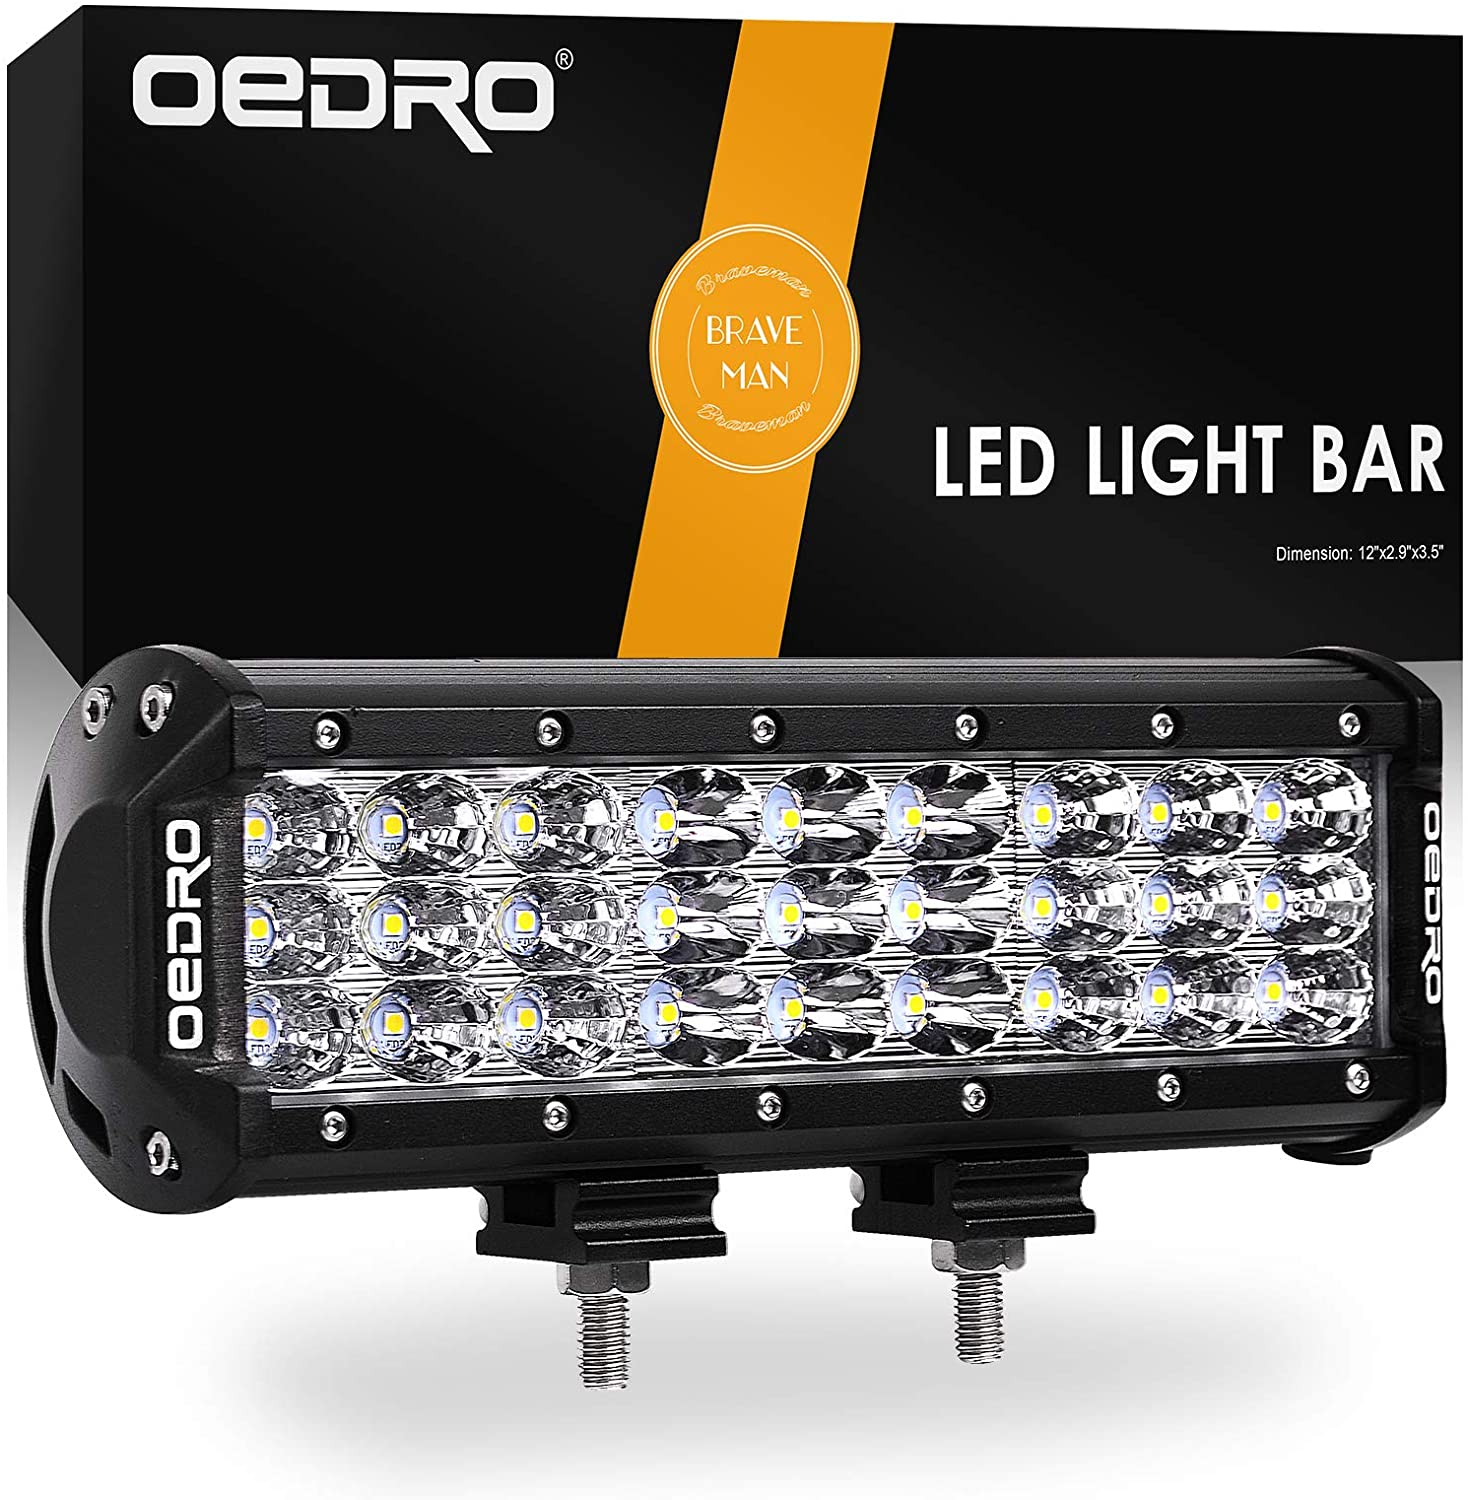 oEdRo LED Light Bar 108W 9 Inch Tri-Rows Work Light Spot Flood Combo Light Off Road Driving Lights Fog Light Waterproof Compatible for Boat Truck Pickup Jeep SUV ATV UTV Motorcycle, 3 Years Warranty